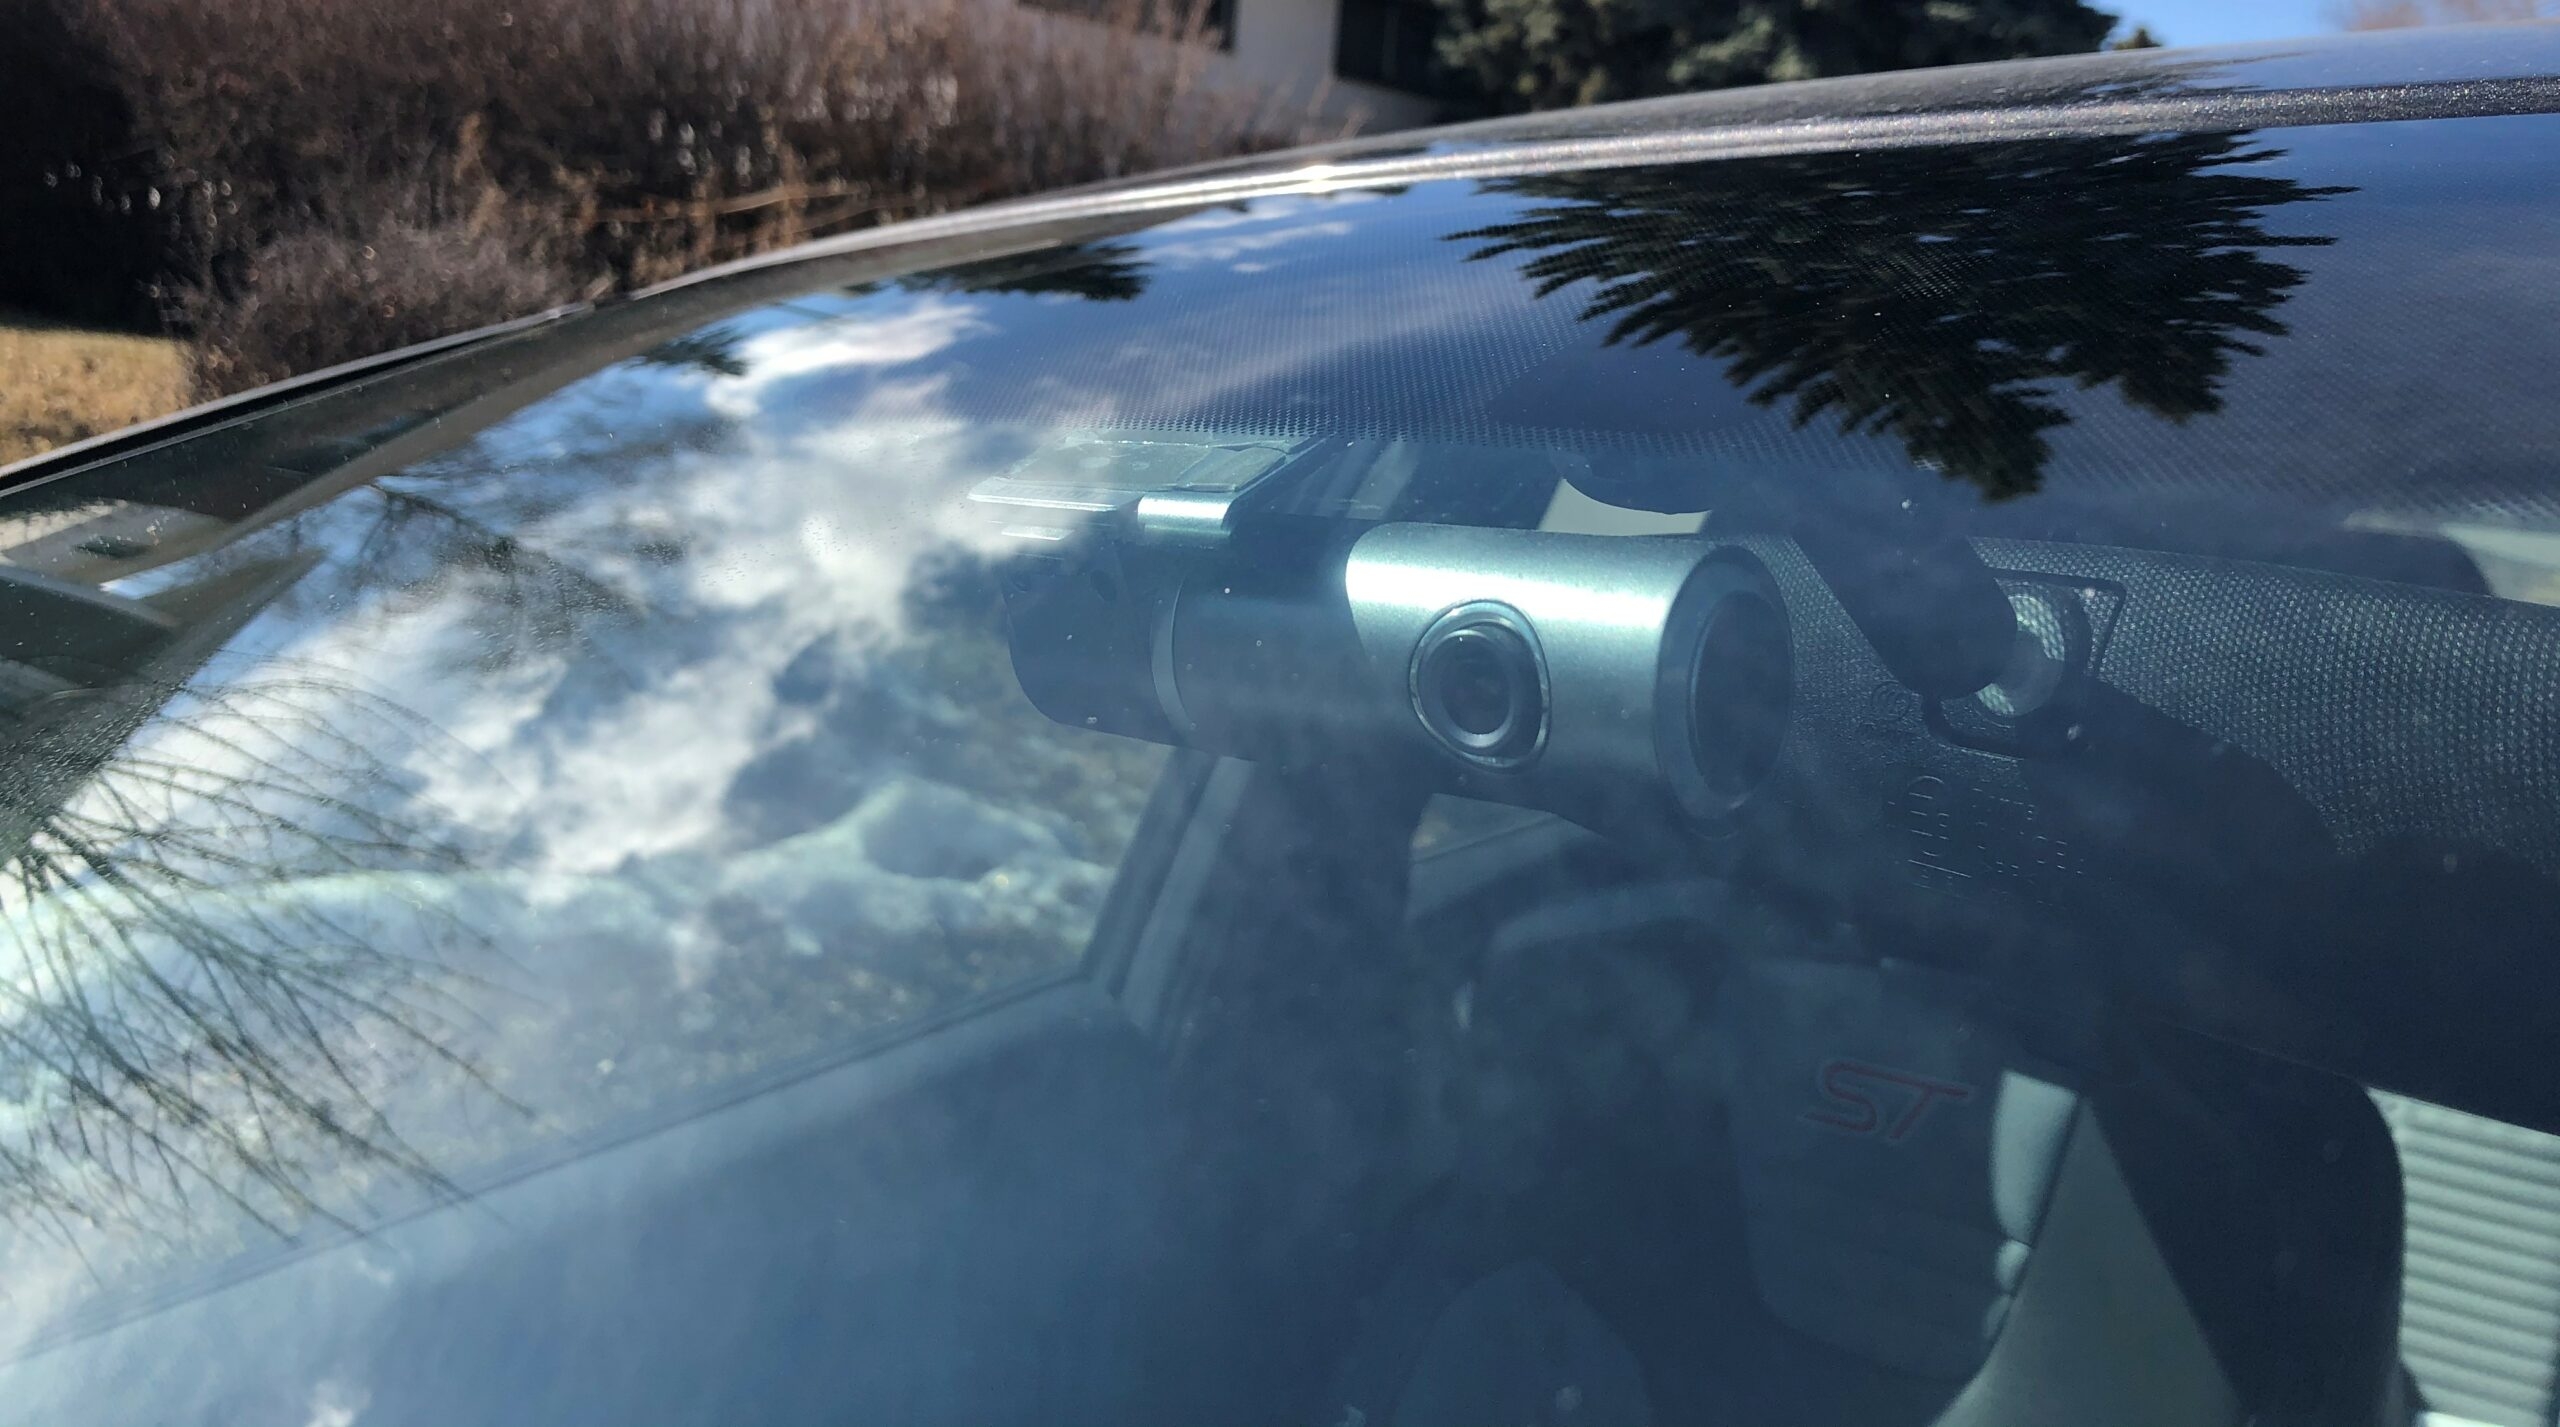 Dashcam mounted on front windshield